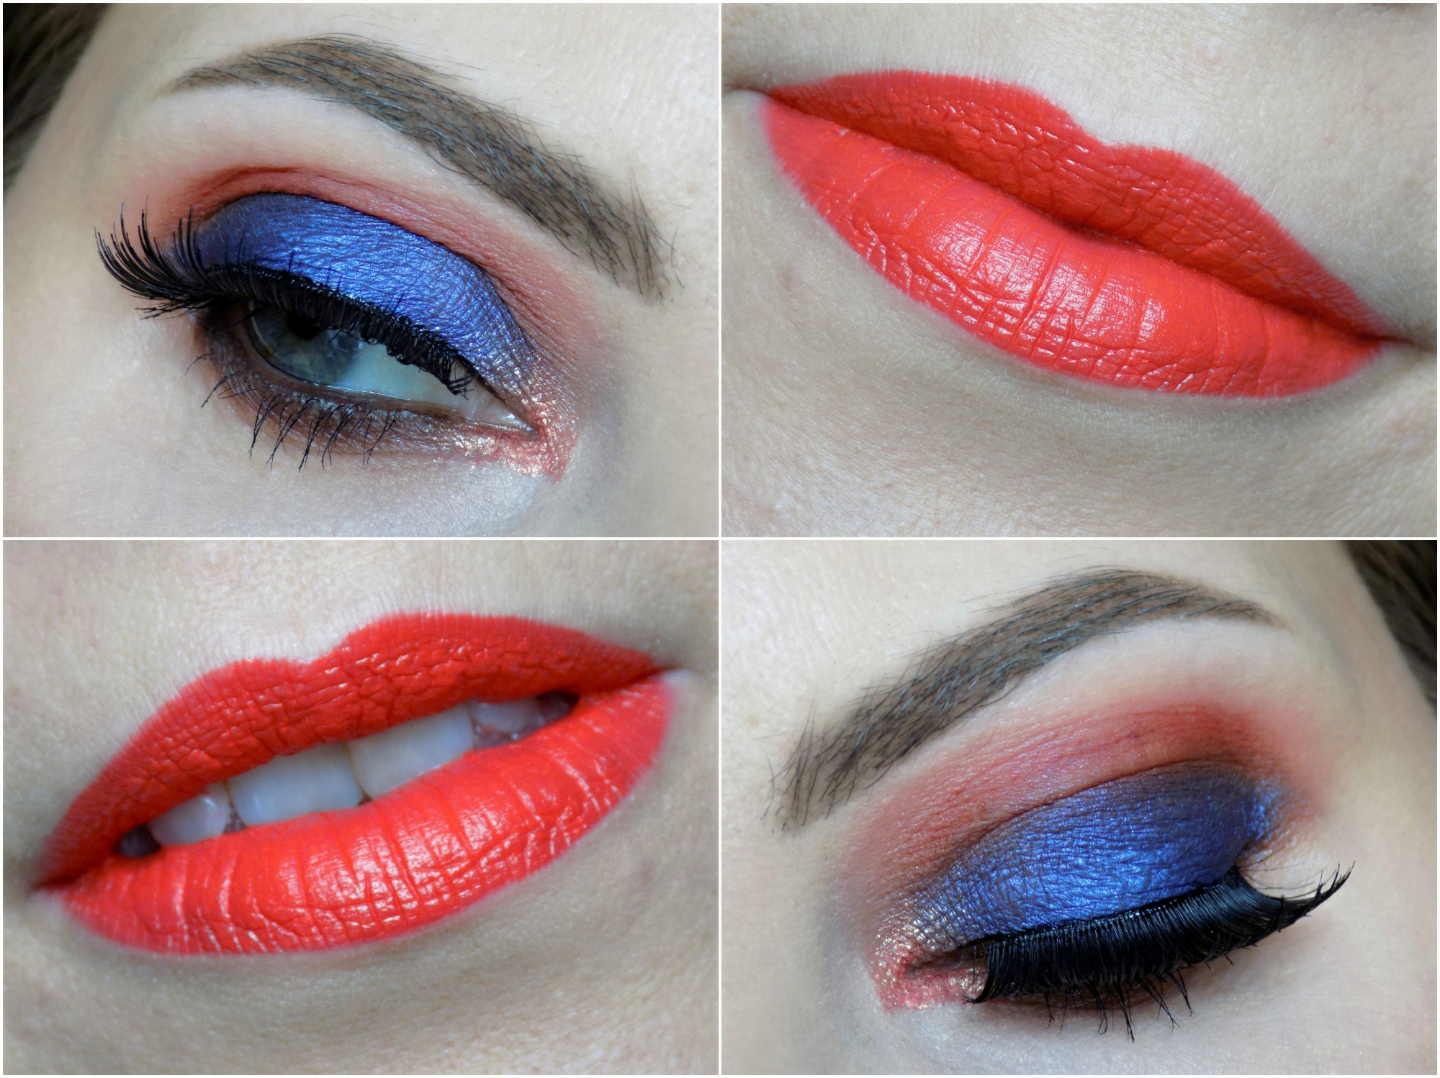 blues & oranges, fun Summer look